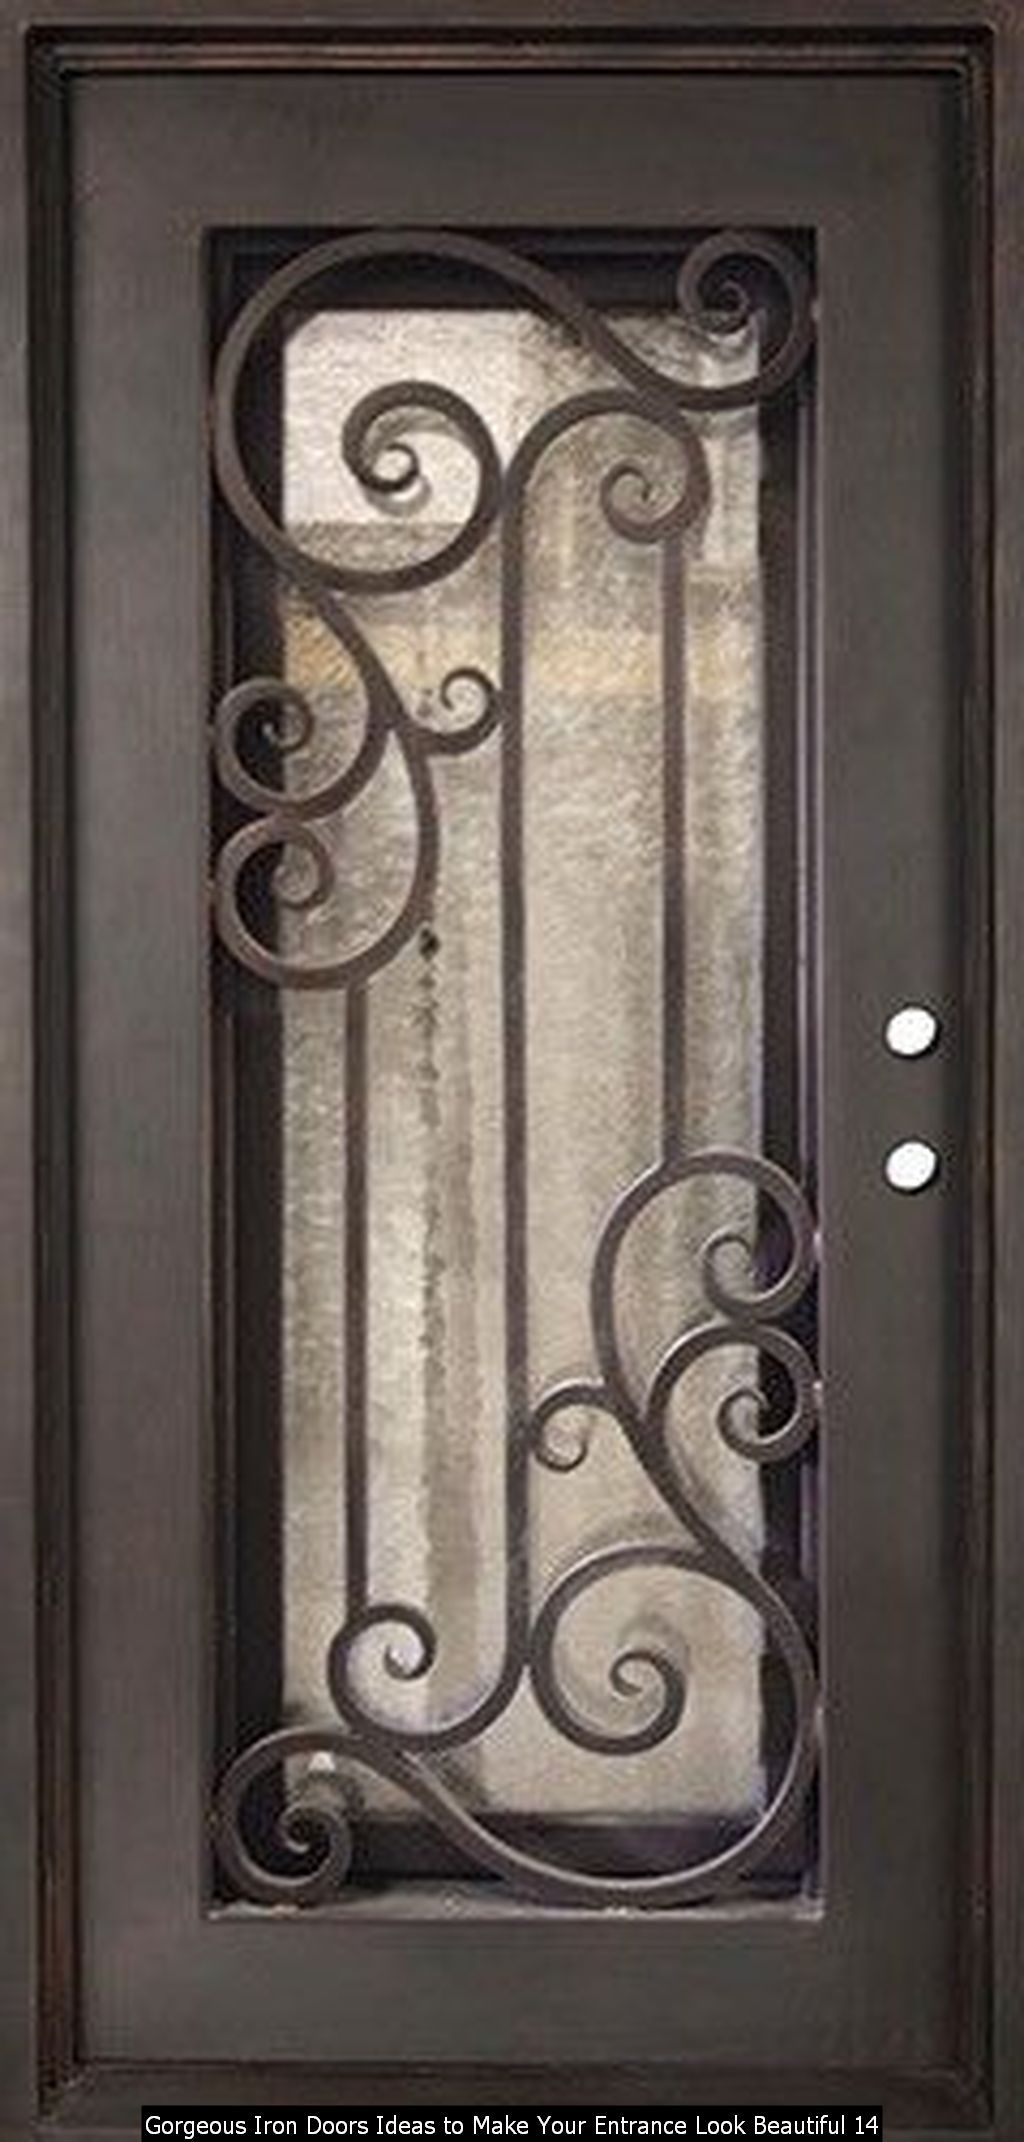 30 iron doors ideas to make your entrance look